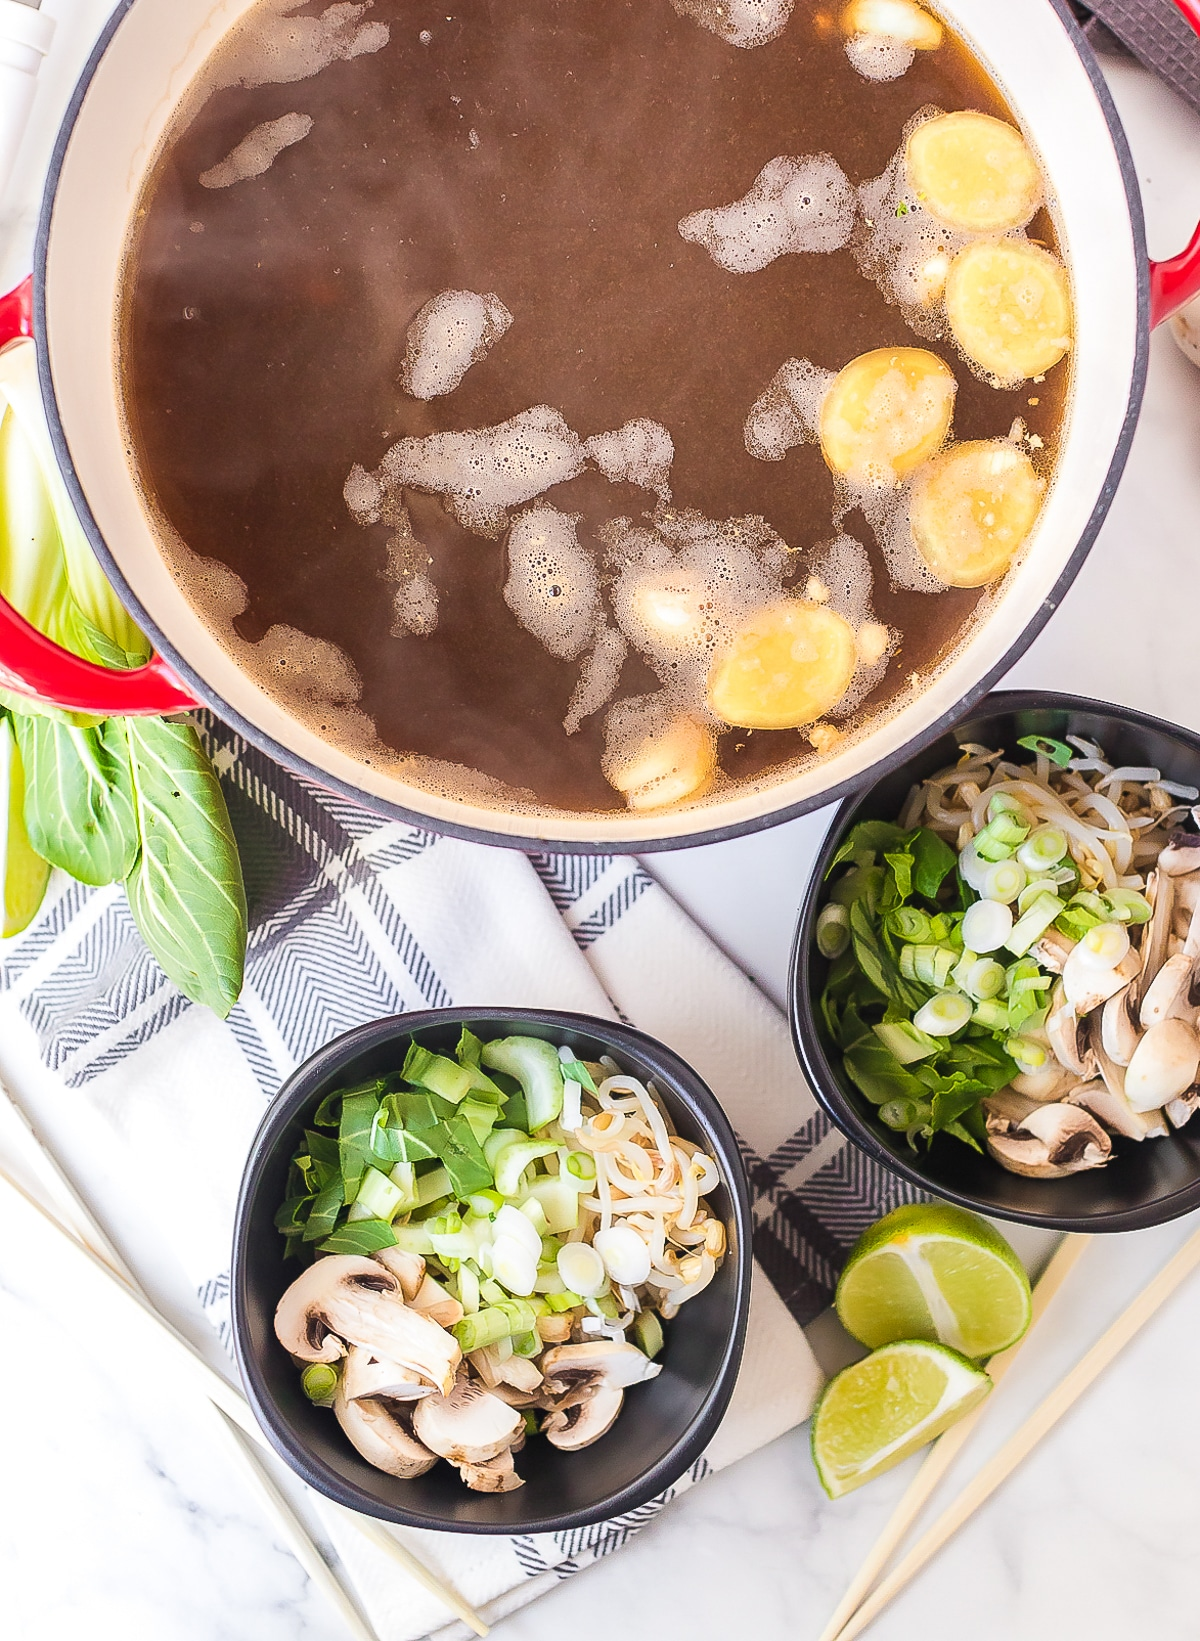 How To Make Chinese Hot Pot Recipe (Gluten Free) #ASpicyPerspective #glutenfree #soup #chinese #healthy